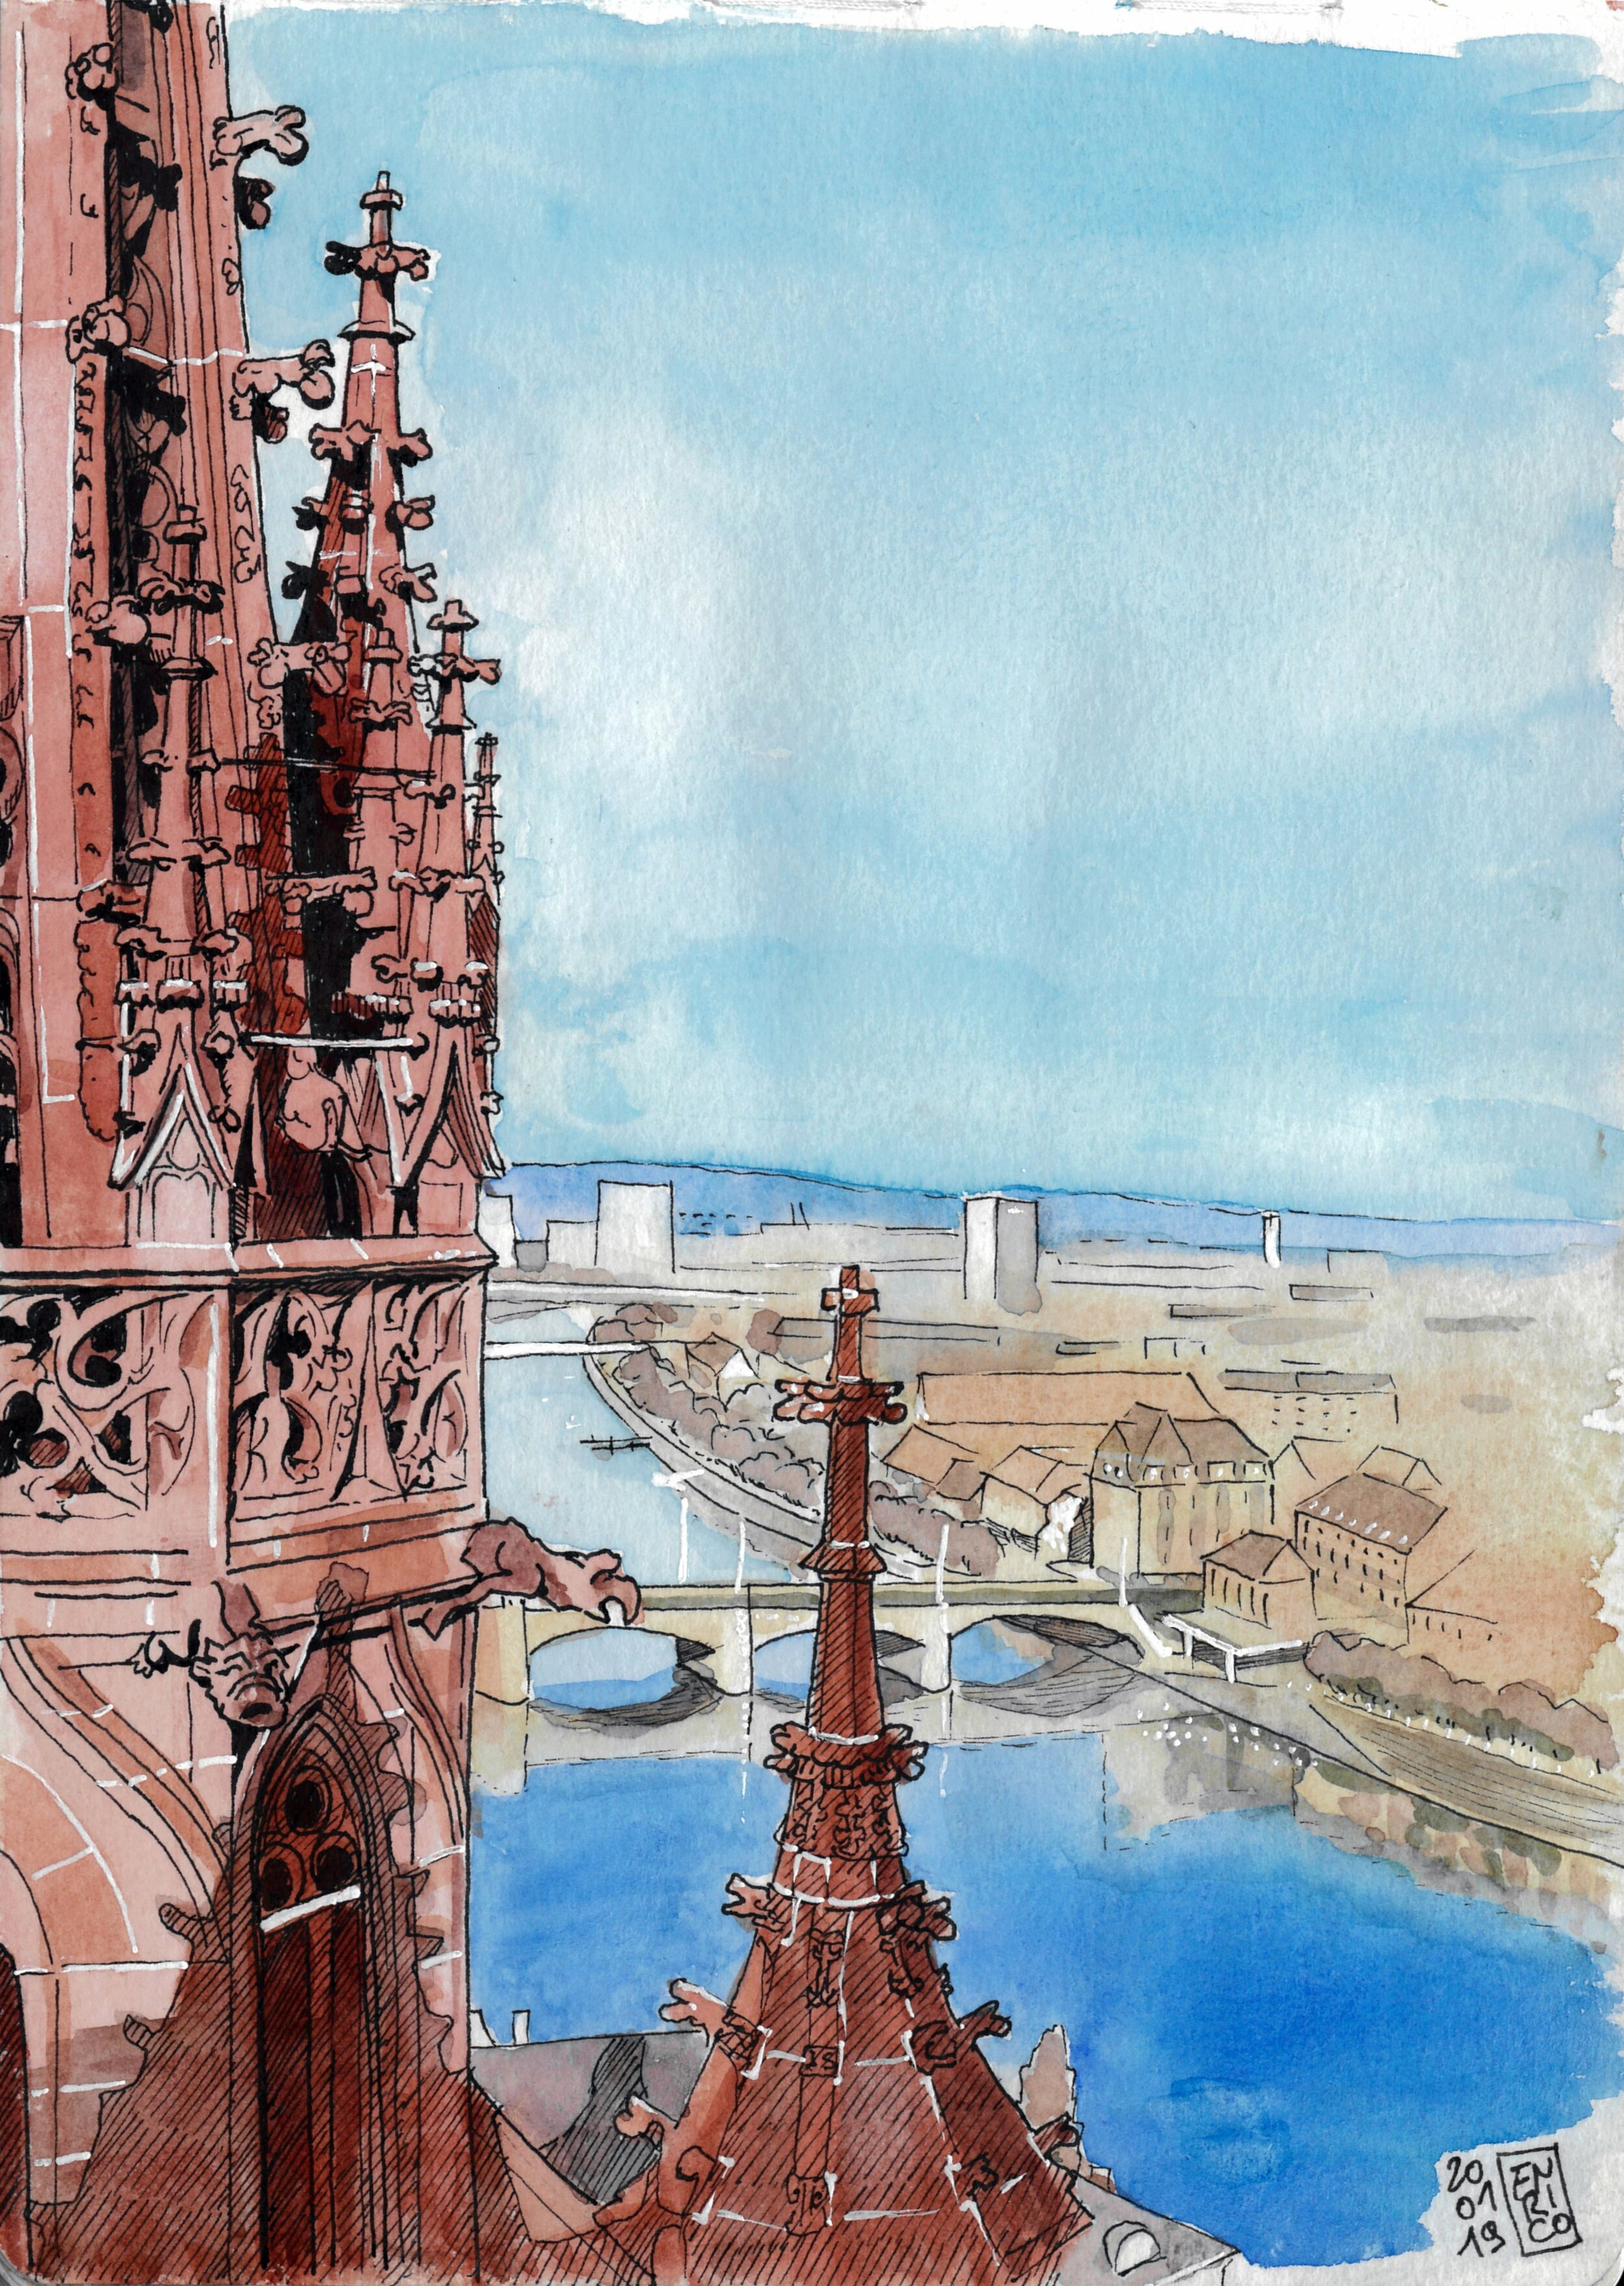 The view from the other tower of the Munster, watching downstream the Rhine. I went heavy with the ink on this one, adding more hetching than my usual. Until the last moment, I wasn't sure if adding color or let the ink only.